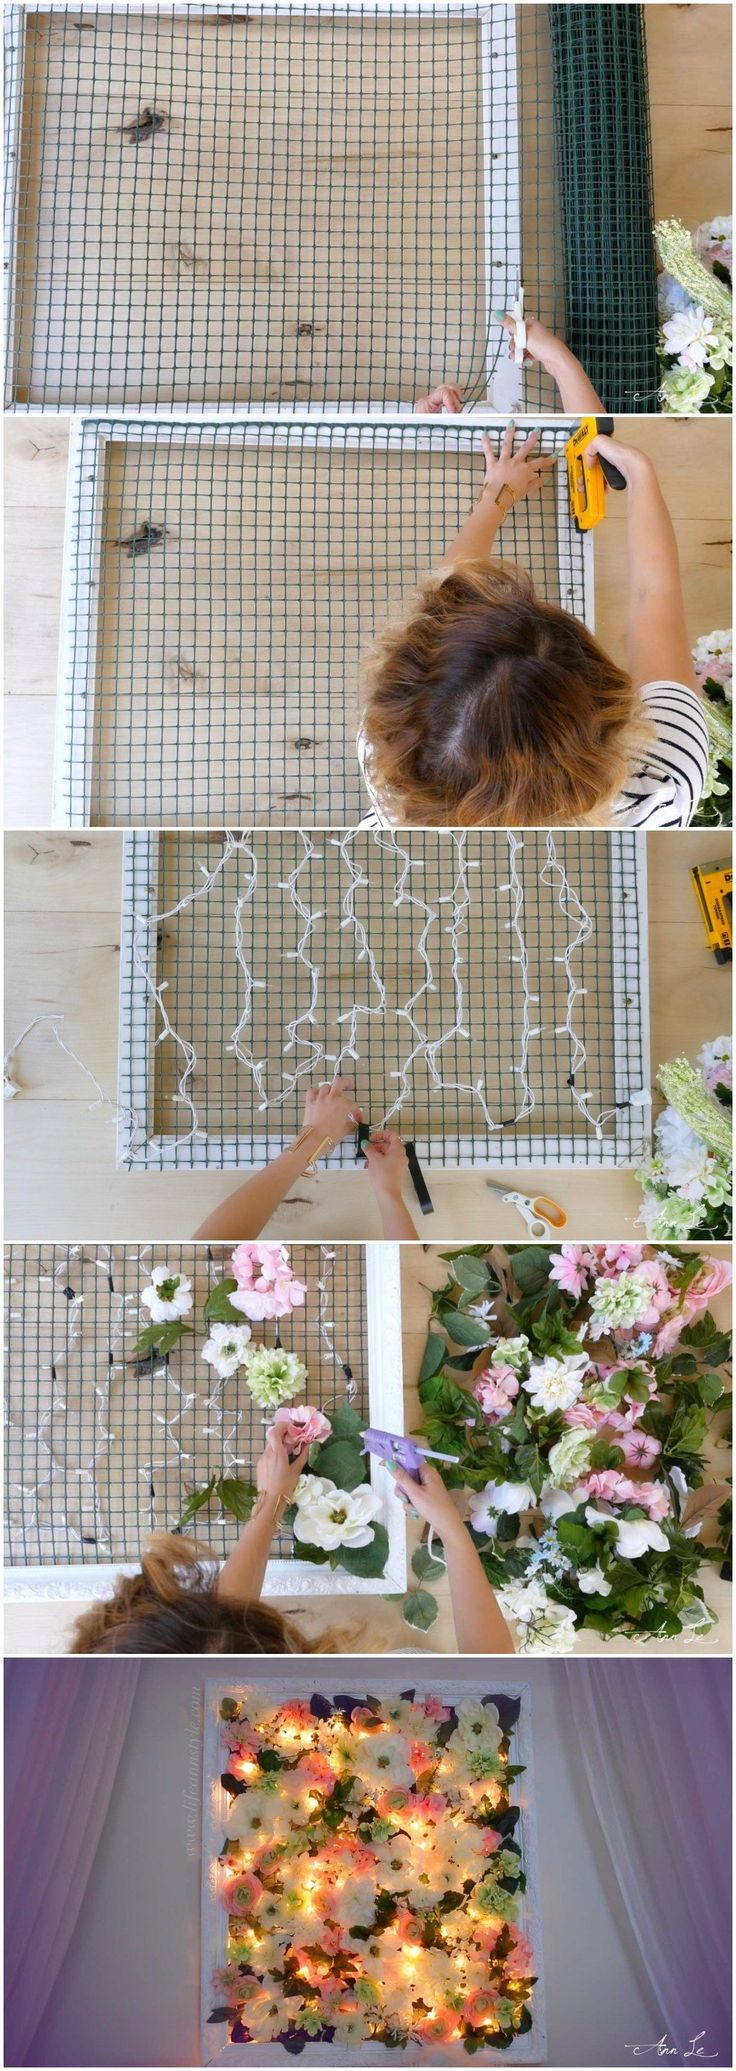 Decoración con luces y flores - lifeannstyle.com - DIY Light Up Flower Frame - #decoracion #homedecor #muebles